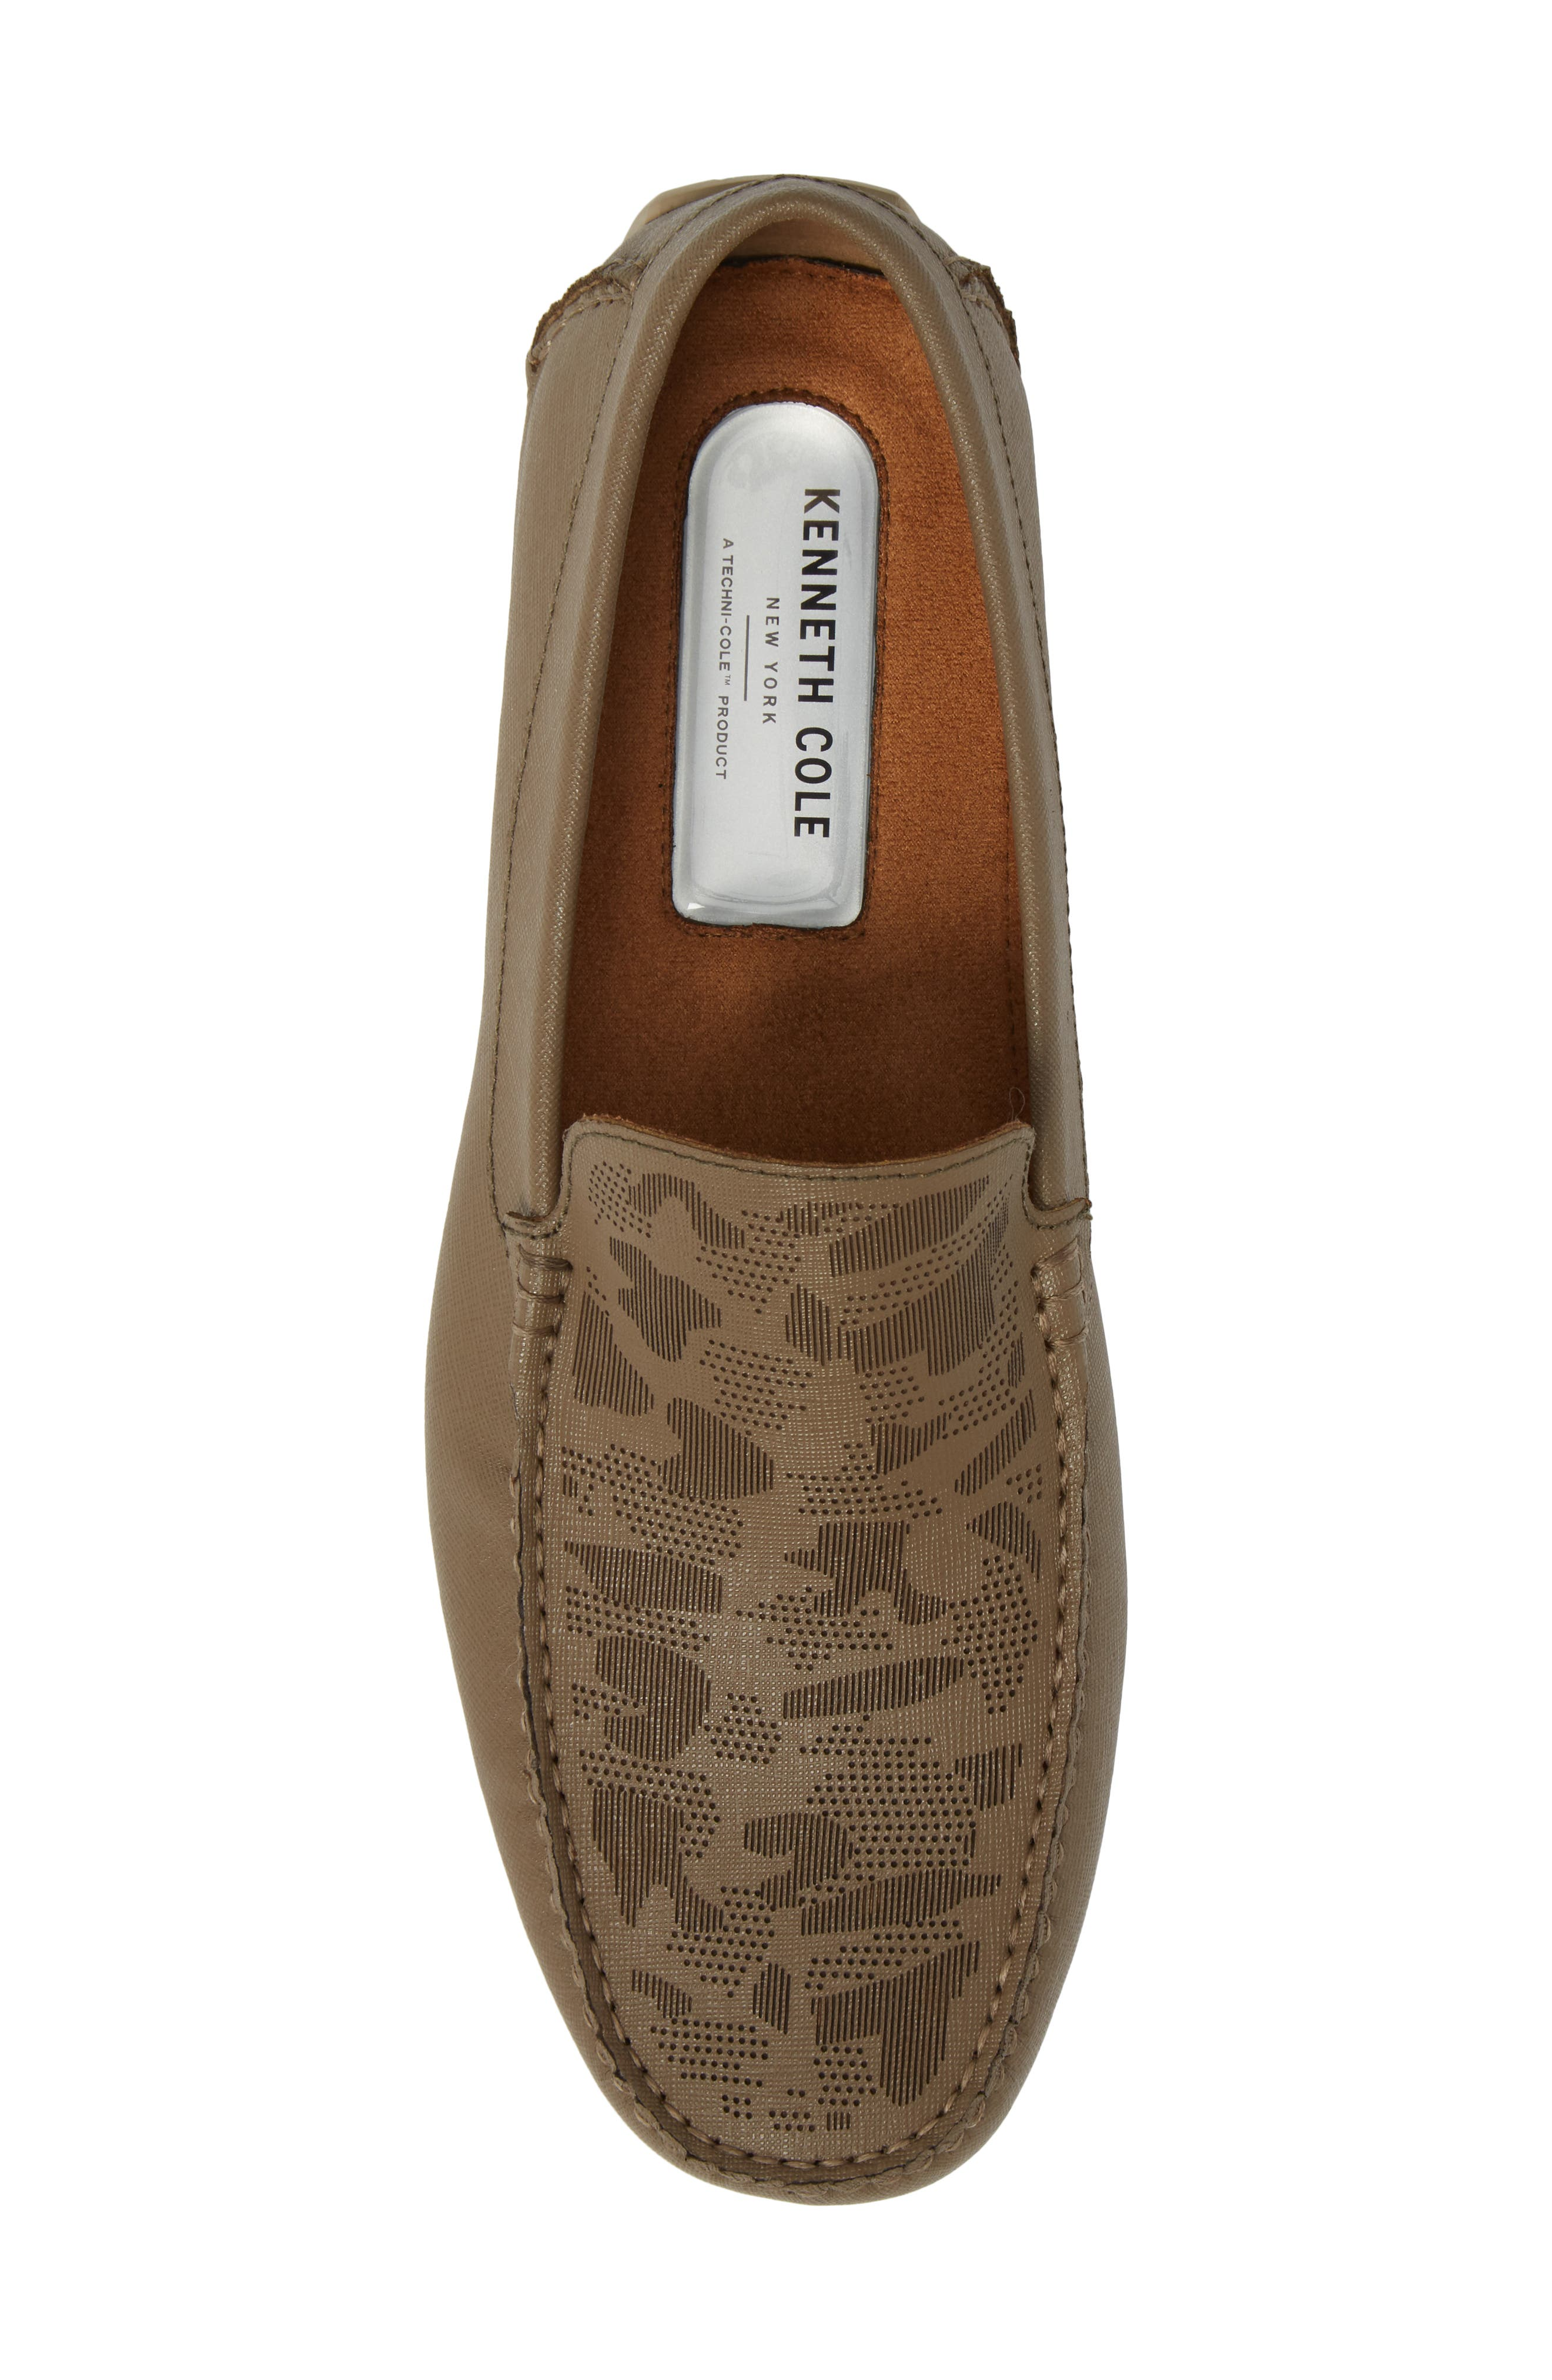 Theme Song Driving Shoe,                             Alternate thumbnail 5, color,                             Taupe Leather